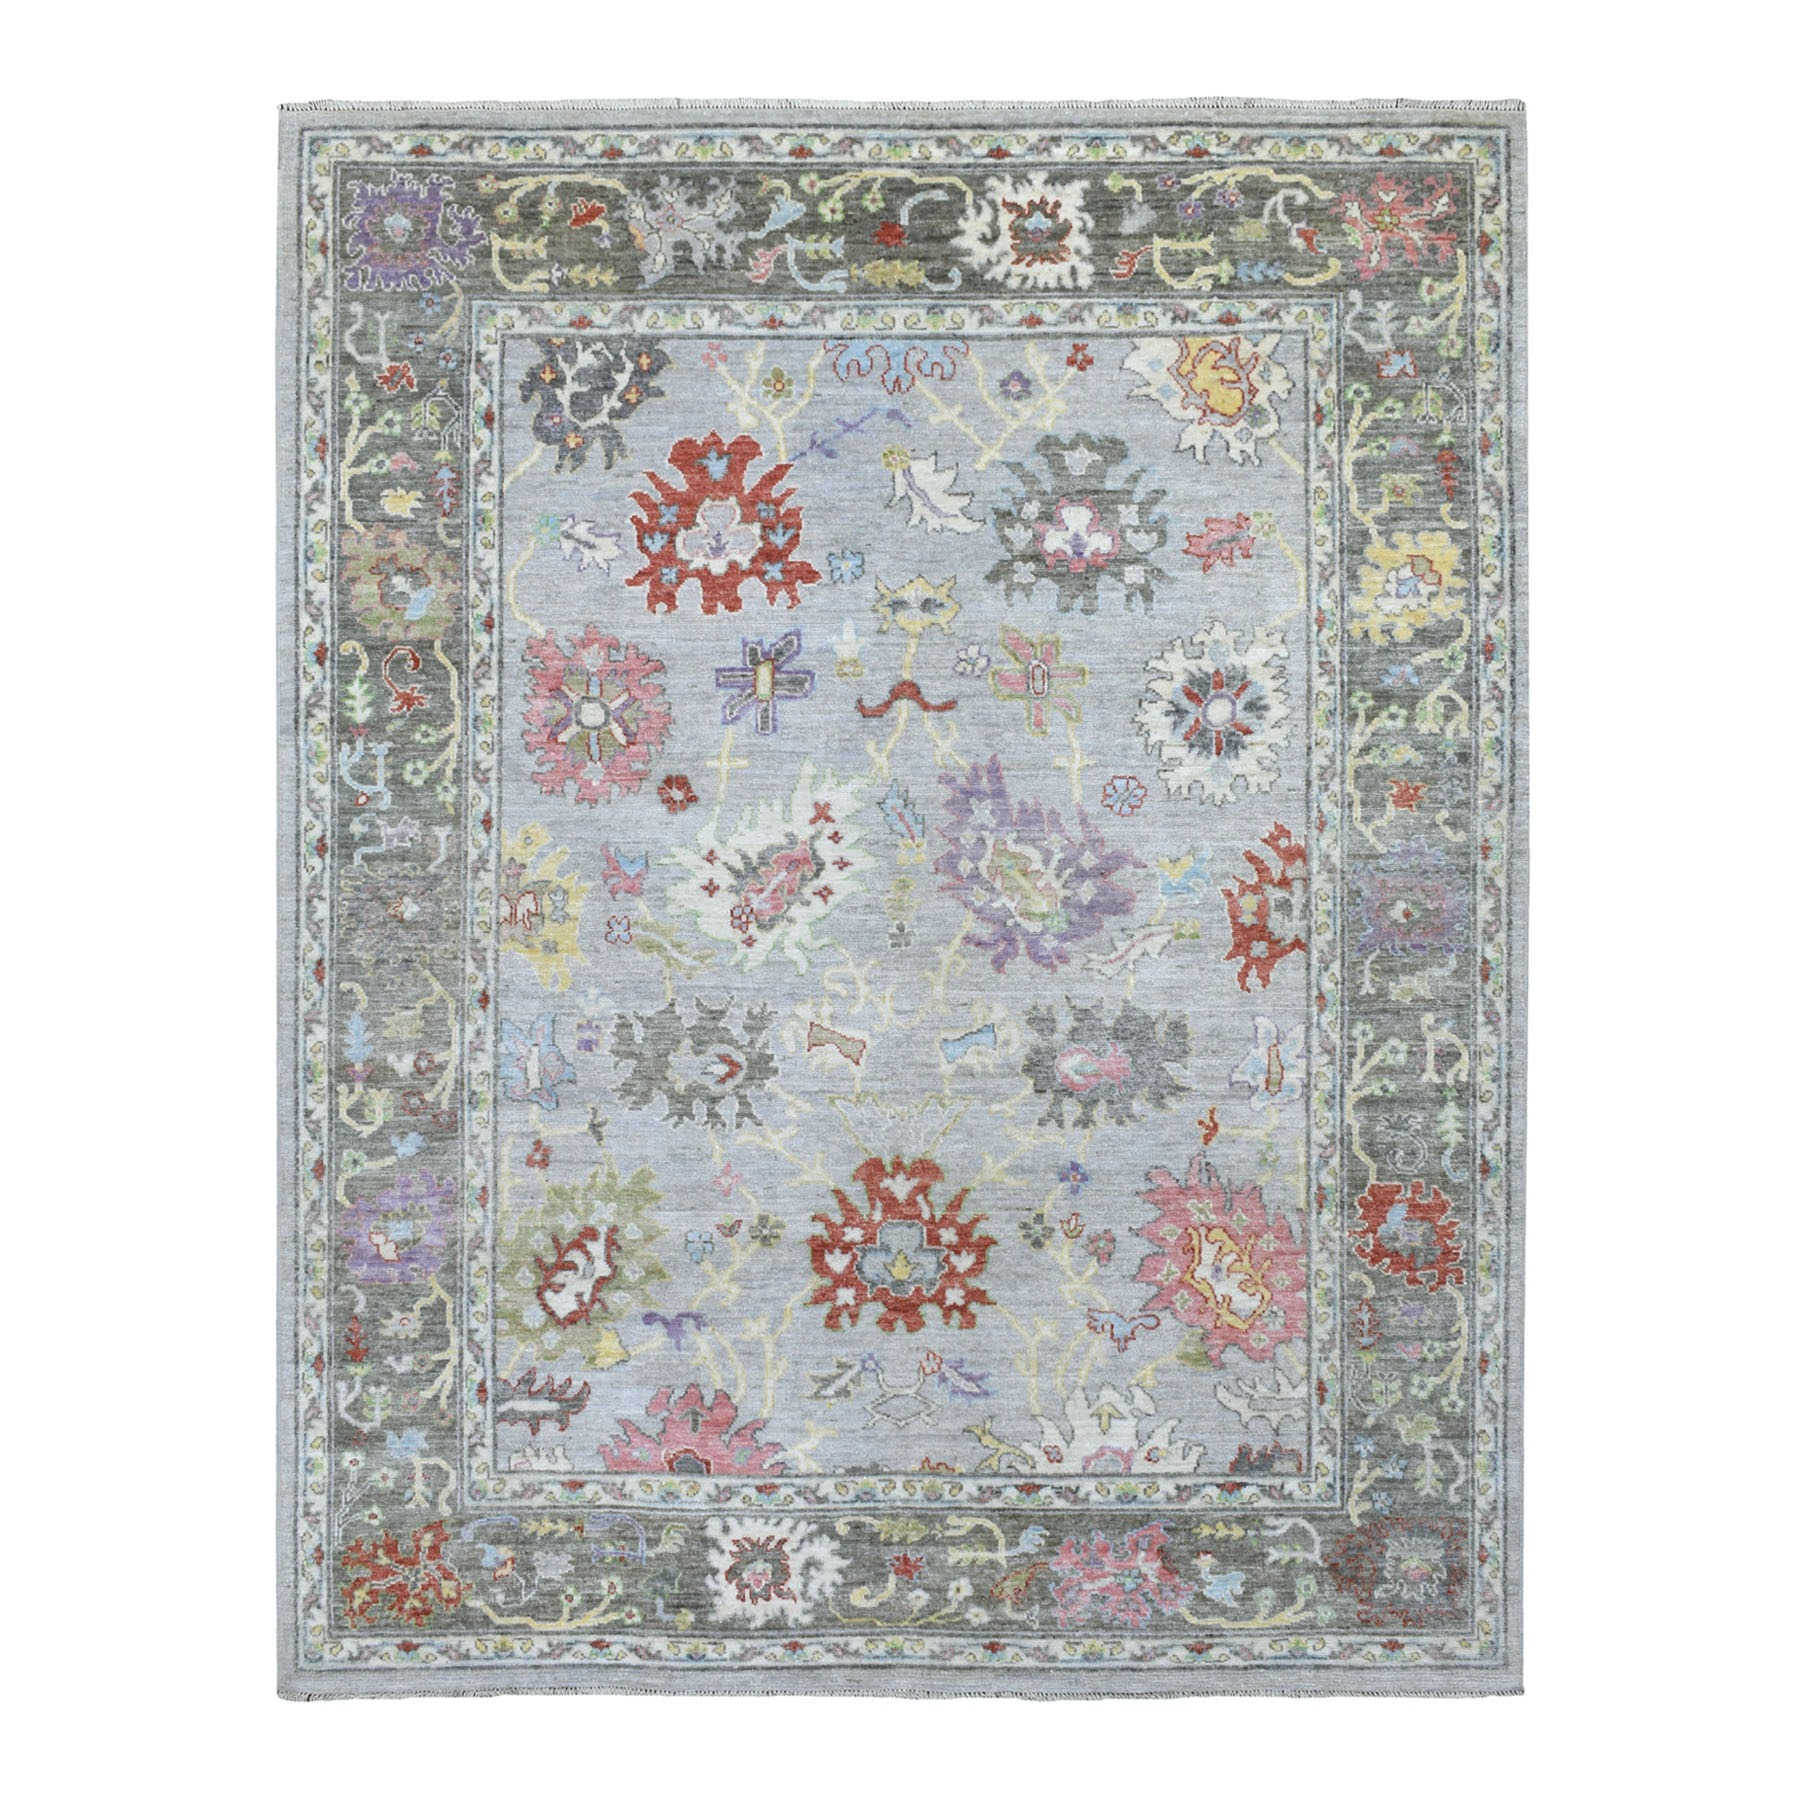 "8'x9'9"" Light Gray Angora Oushak With Floral Motifs Glimmery Wool Hand Knotted Oriental Rug"